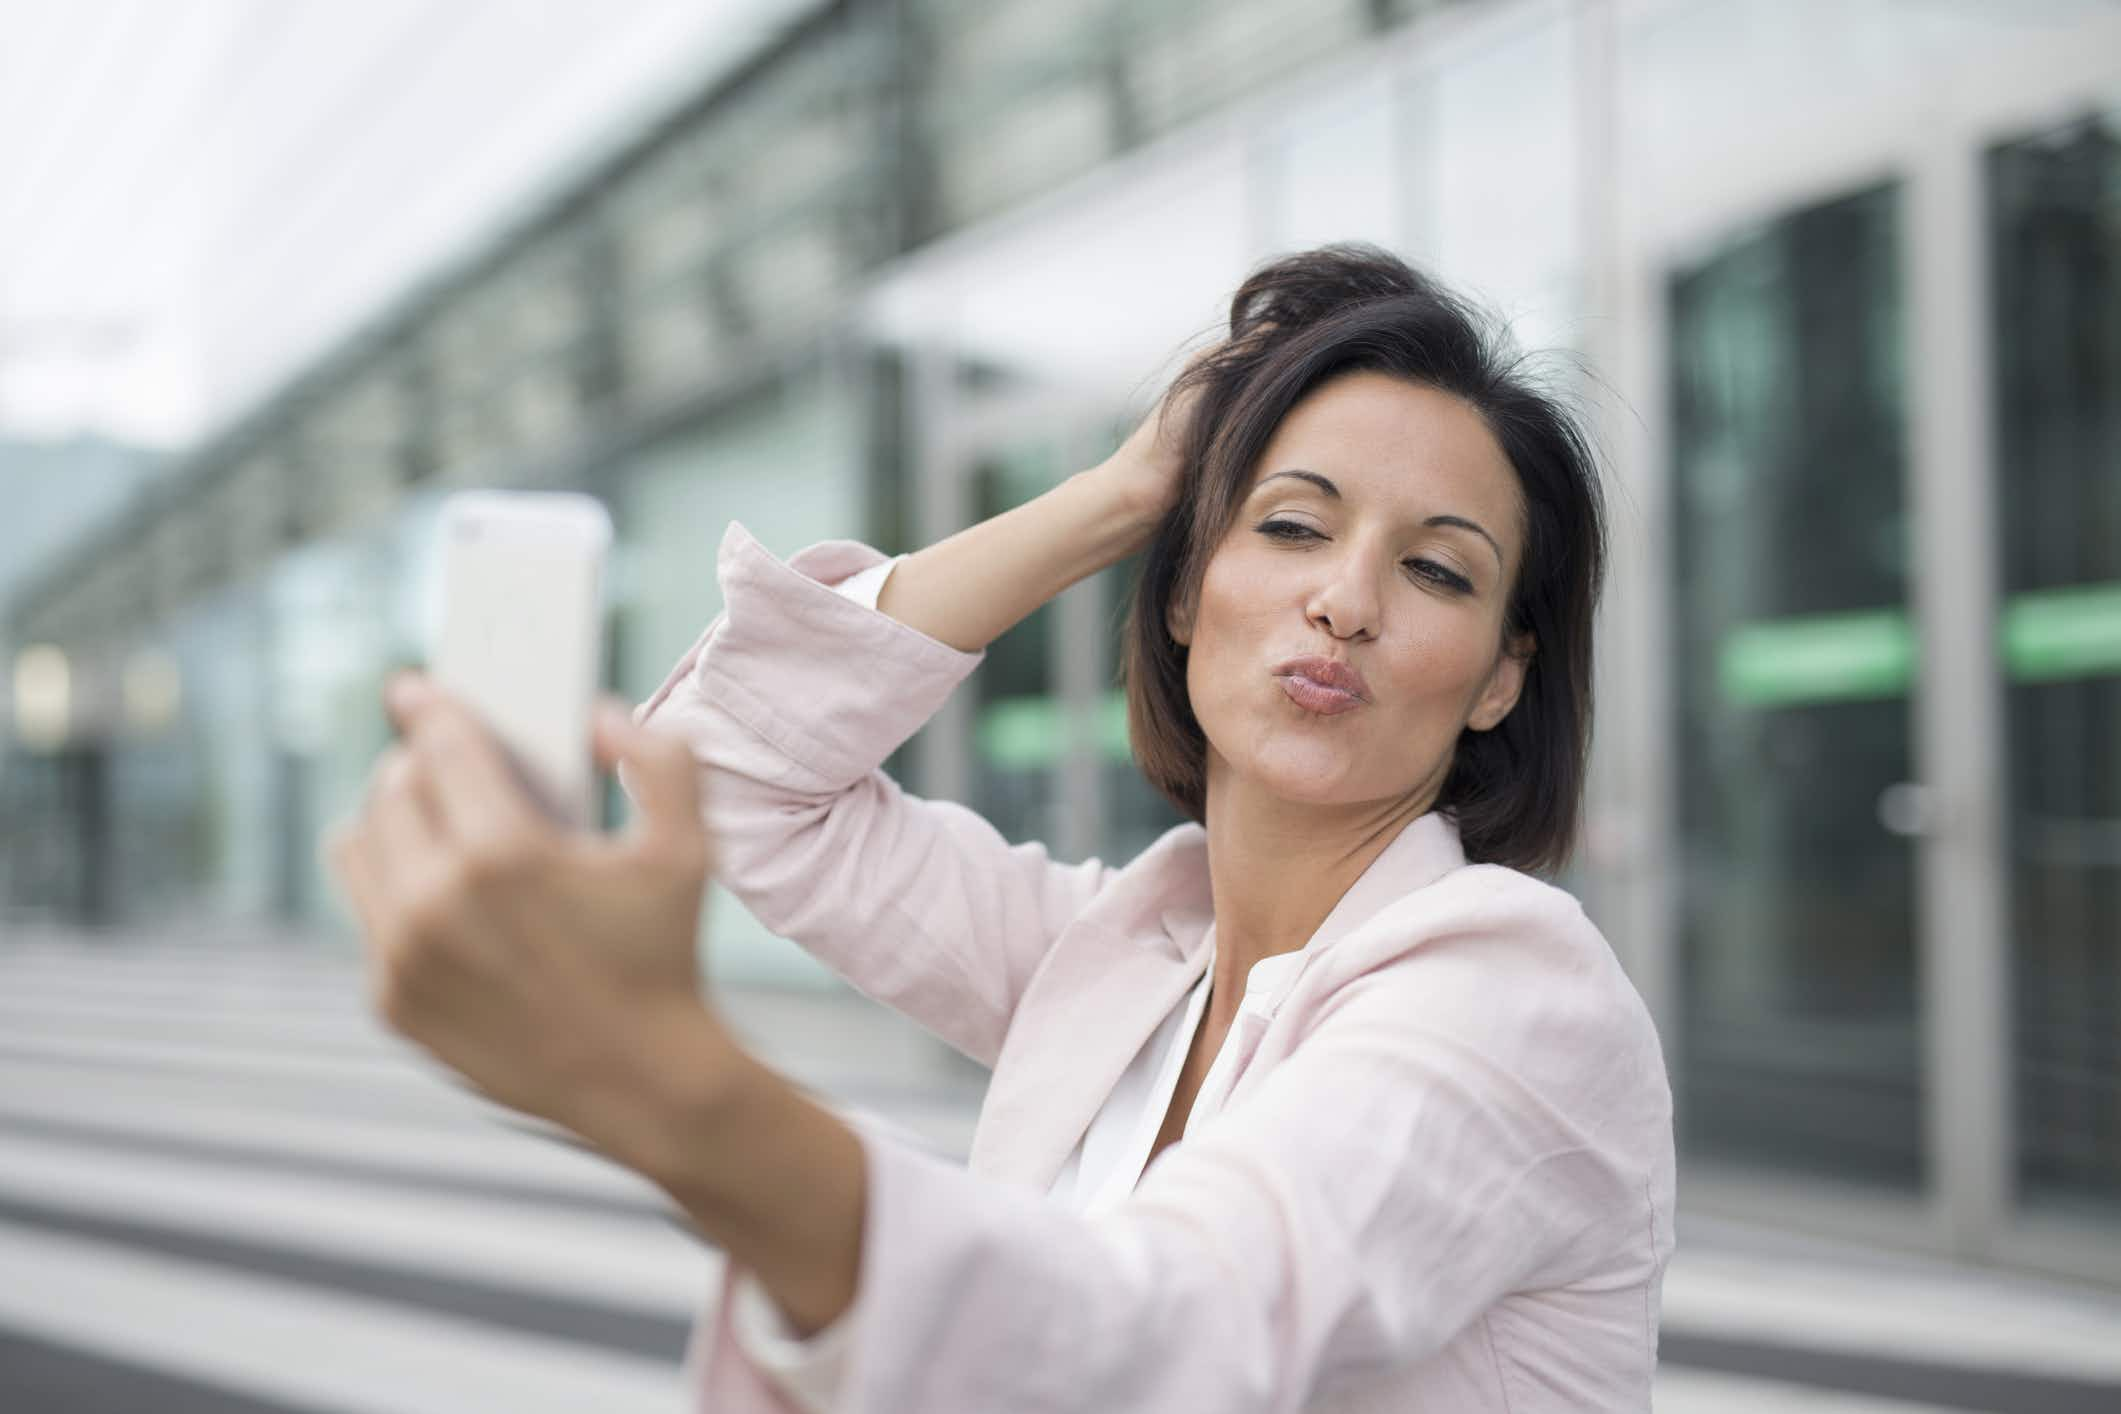 One airline is set to allow air passengers to use selfies as boarding passes